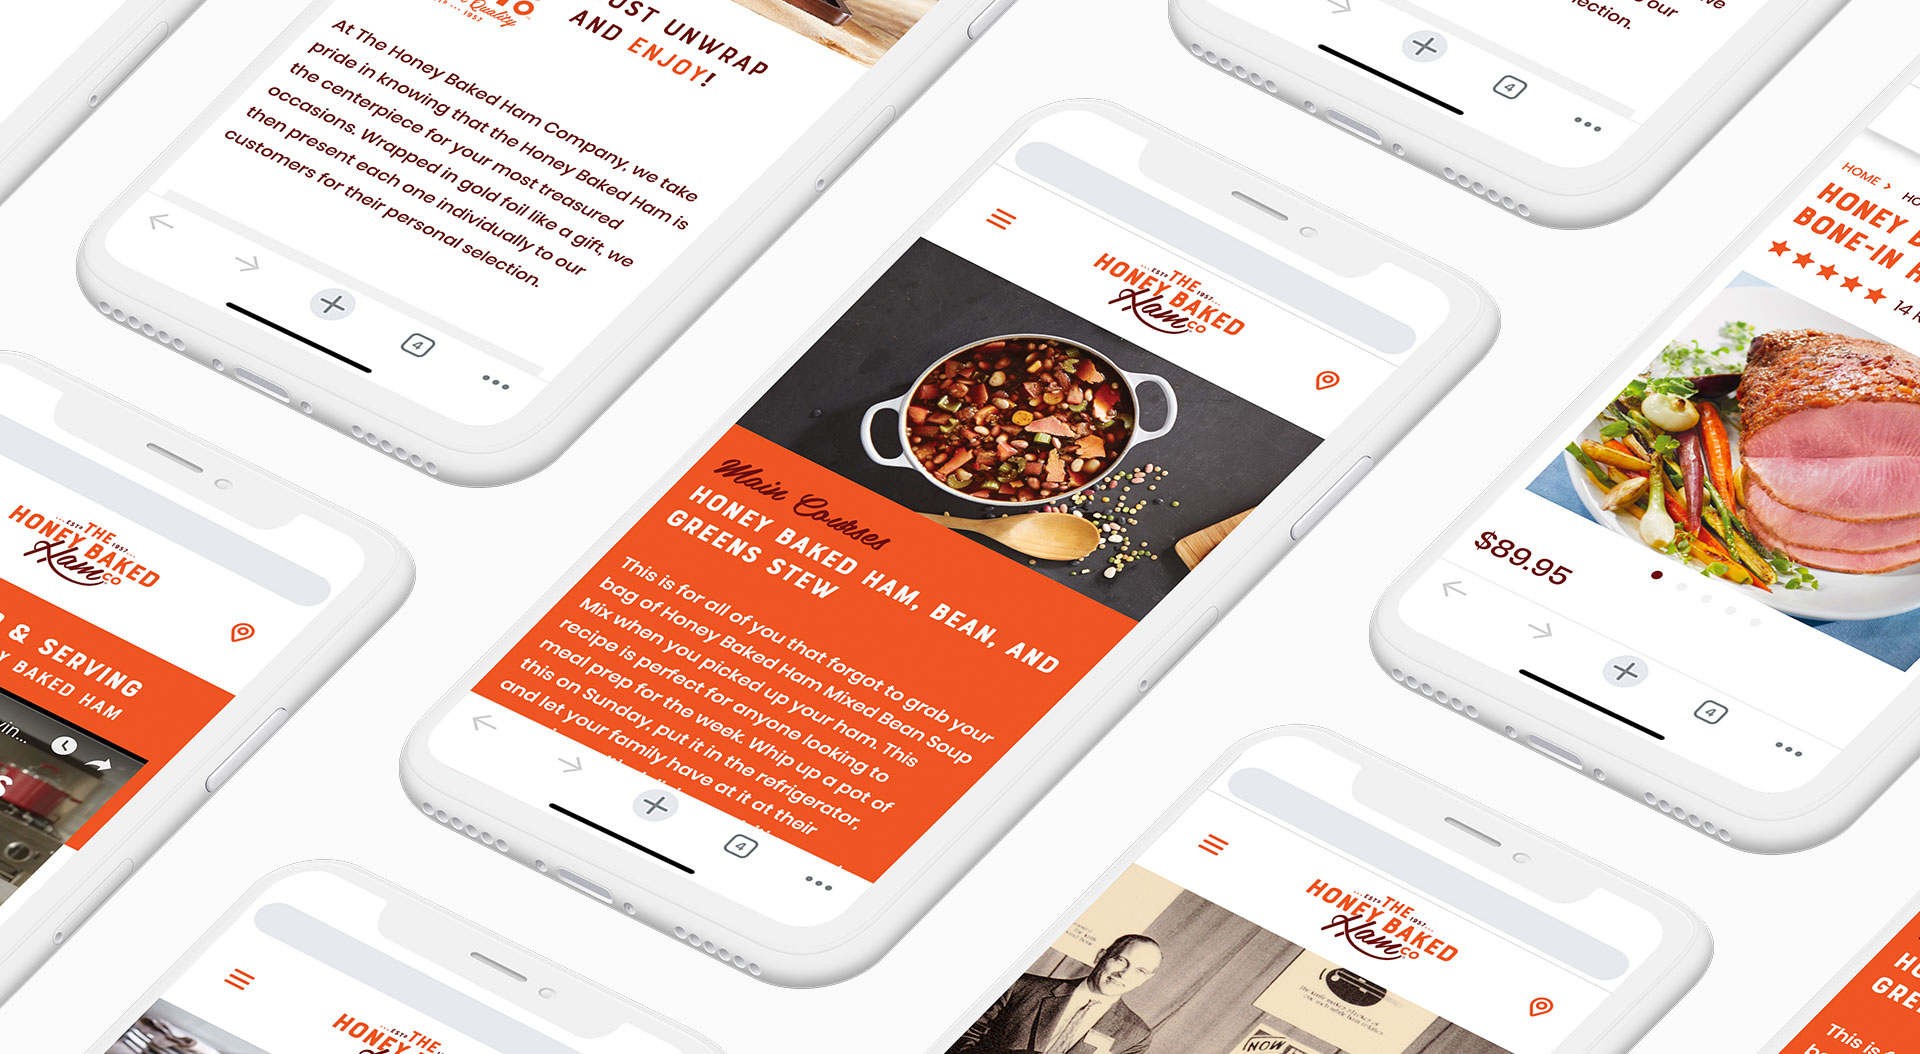 Mobile phone mockups of the Honey Baked Ham Company website.